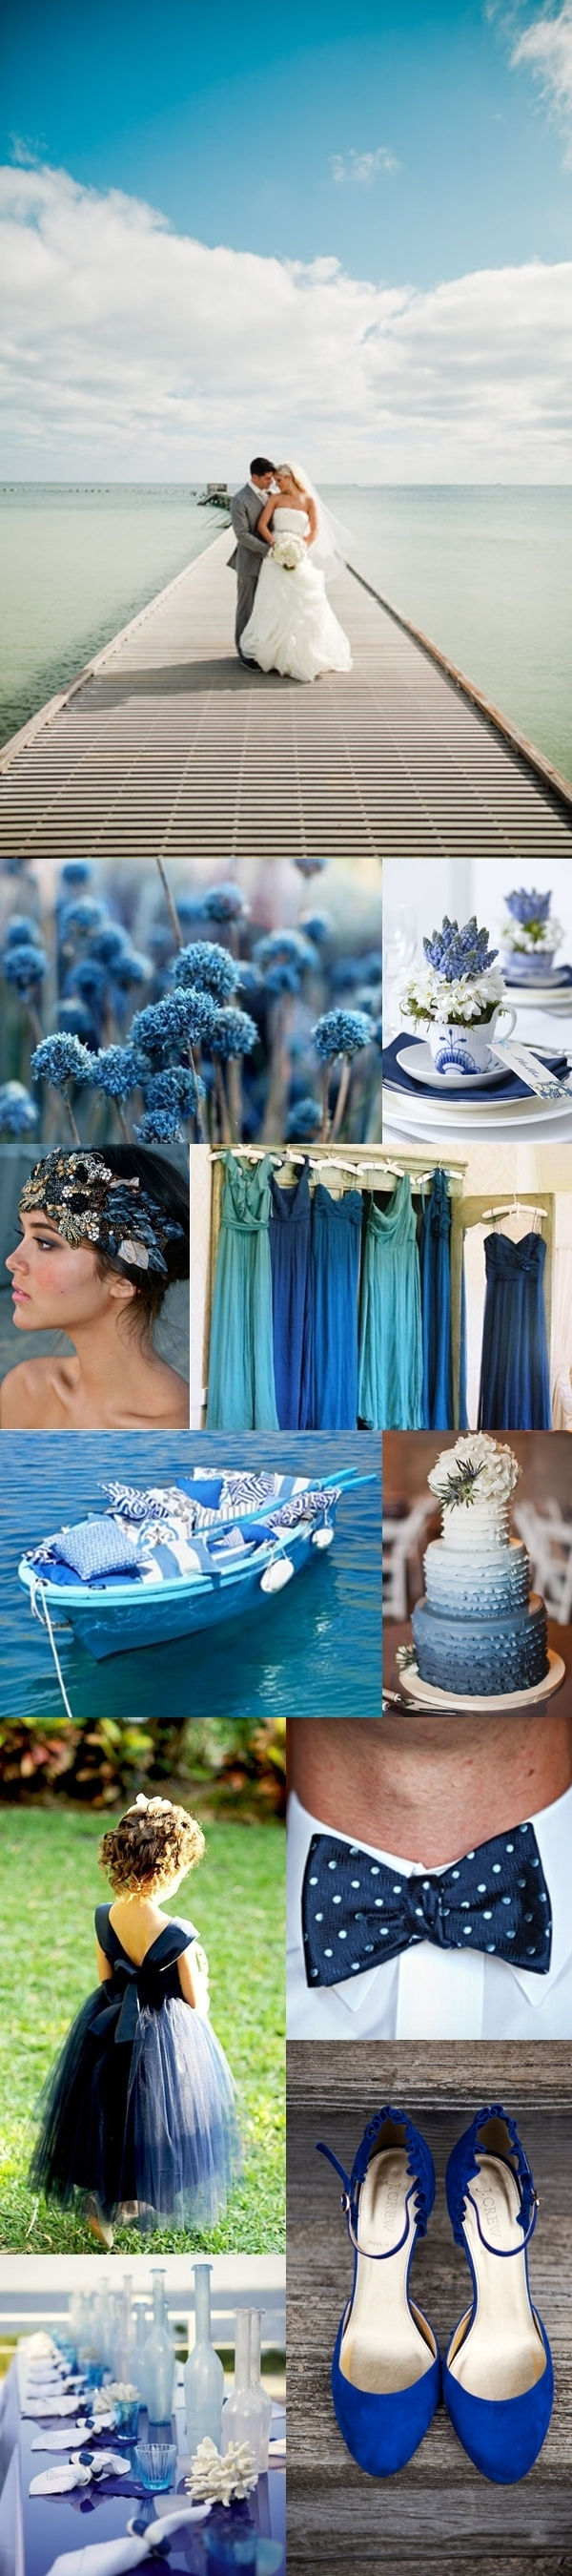 Weddings by Color - Ocean Inspired - Shades of Blue